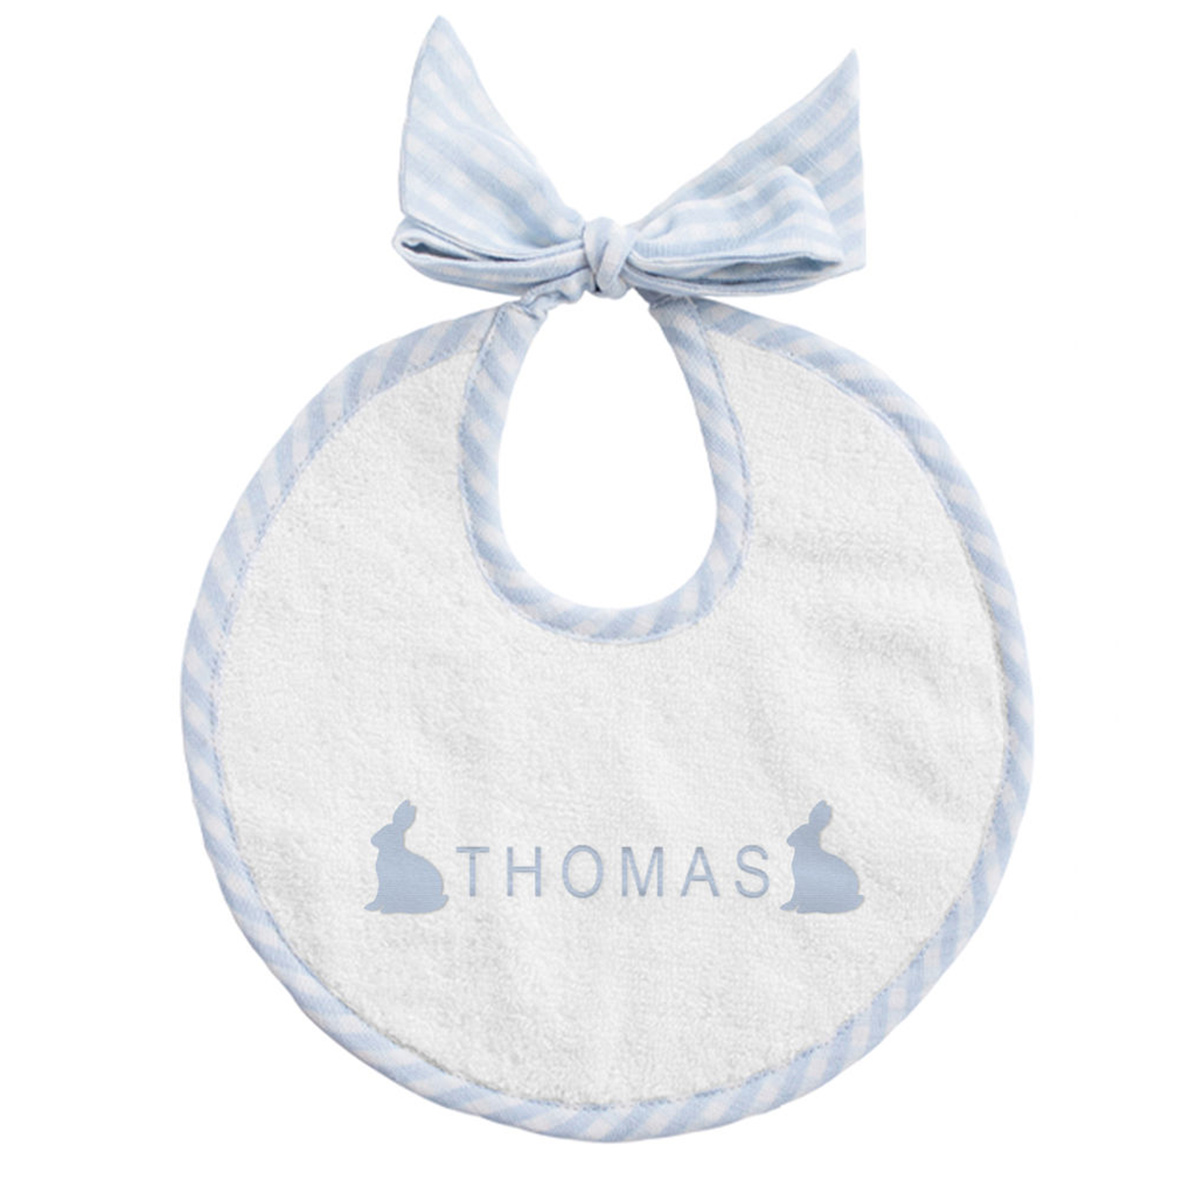 Louelle Personalized Easter Apron Bib - Blue Gingham